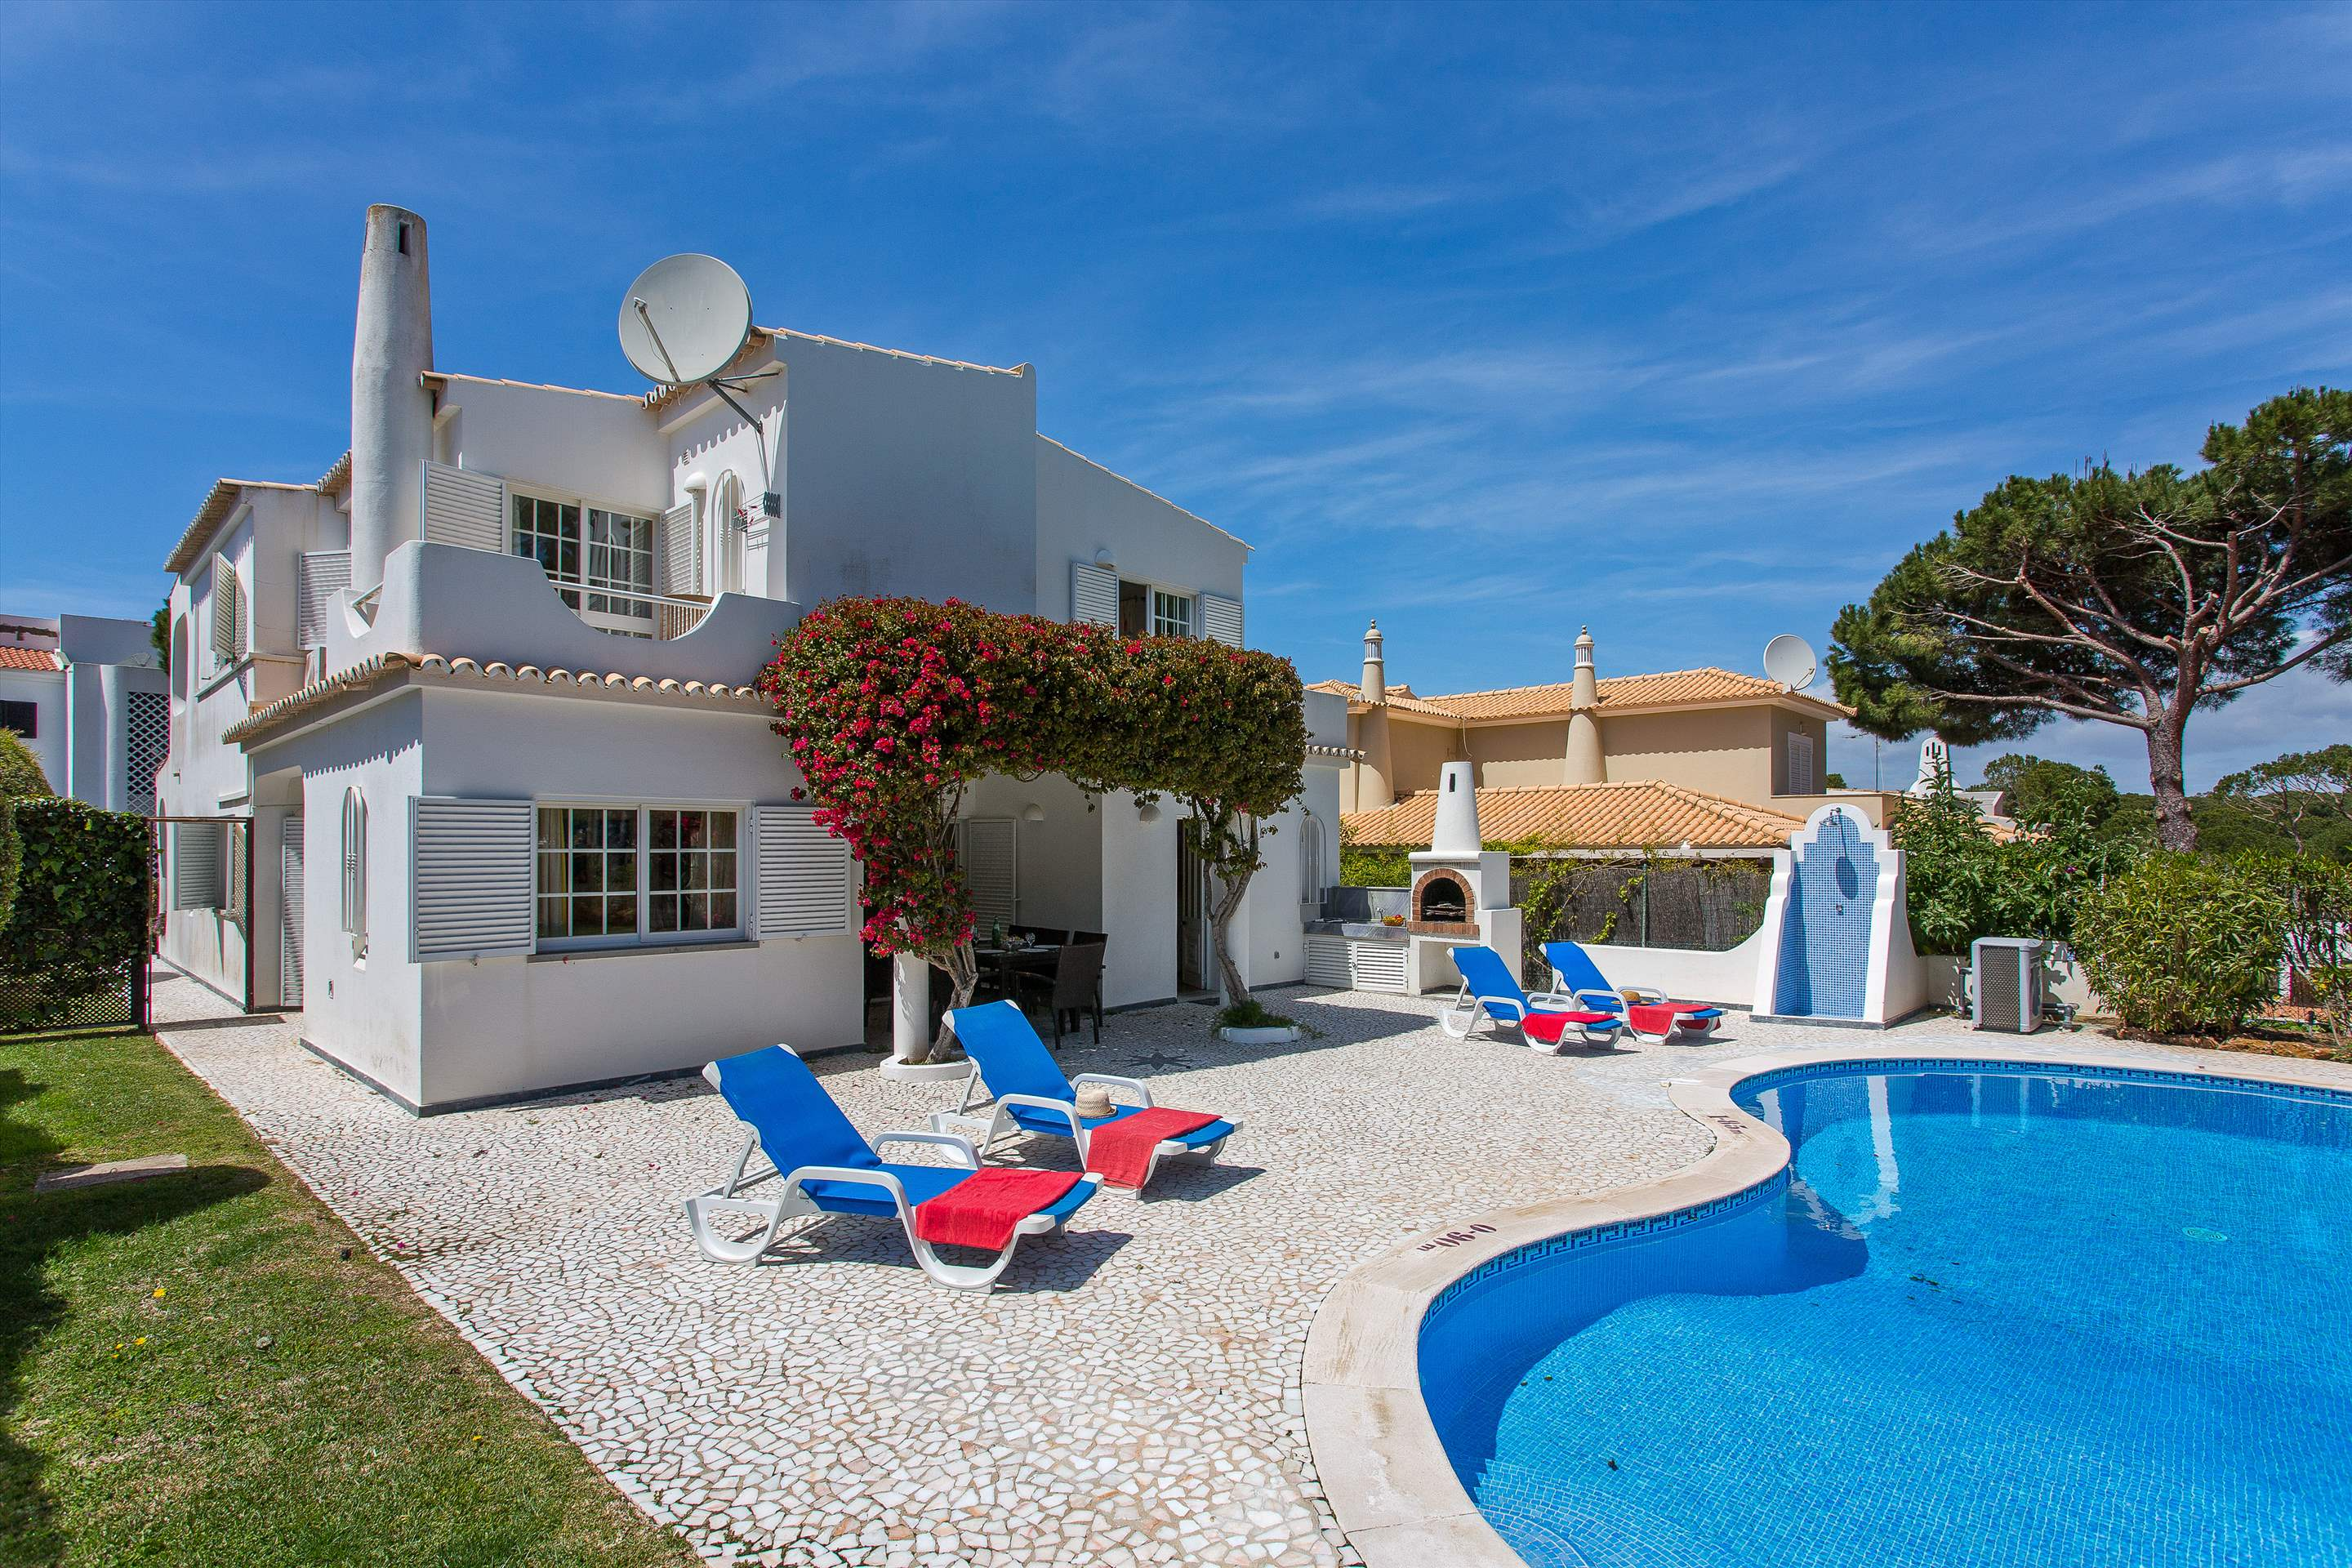 Villa Casablanca, 4 bedroom villa in Vilamoura Area, Algarve Photo #1